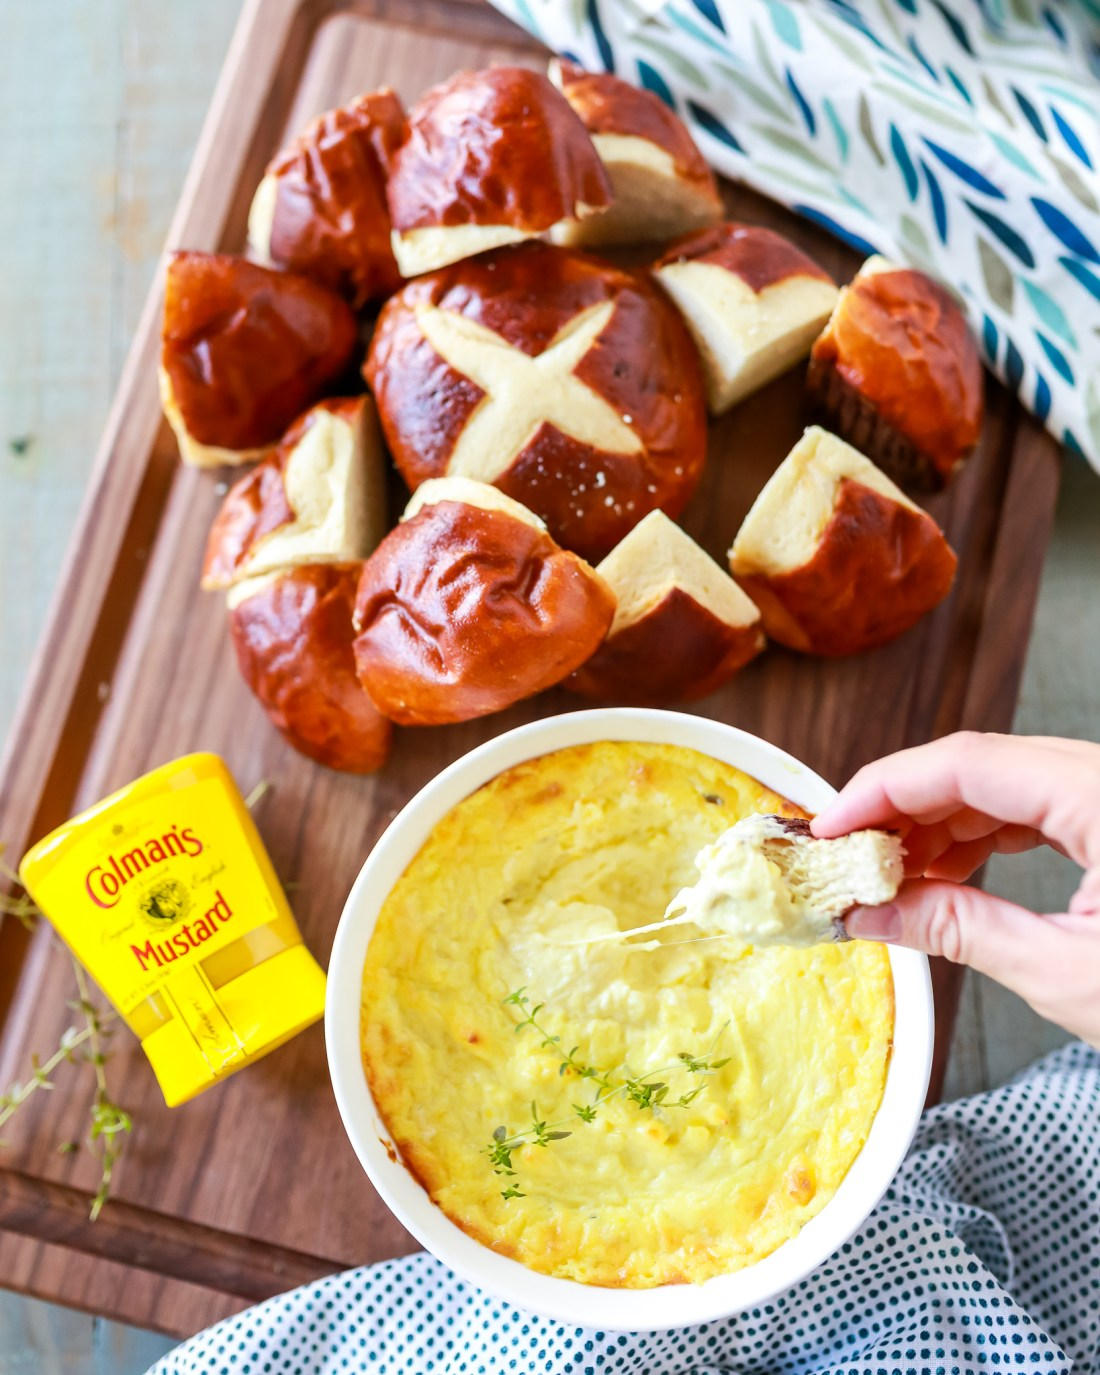 When mustard dipping sauce meets cheese fondue they make the most wonderful Mustard Cheese Dip that was seriously meant to go perfect with pretzels!